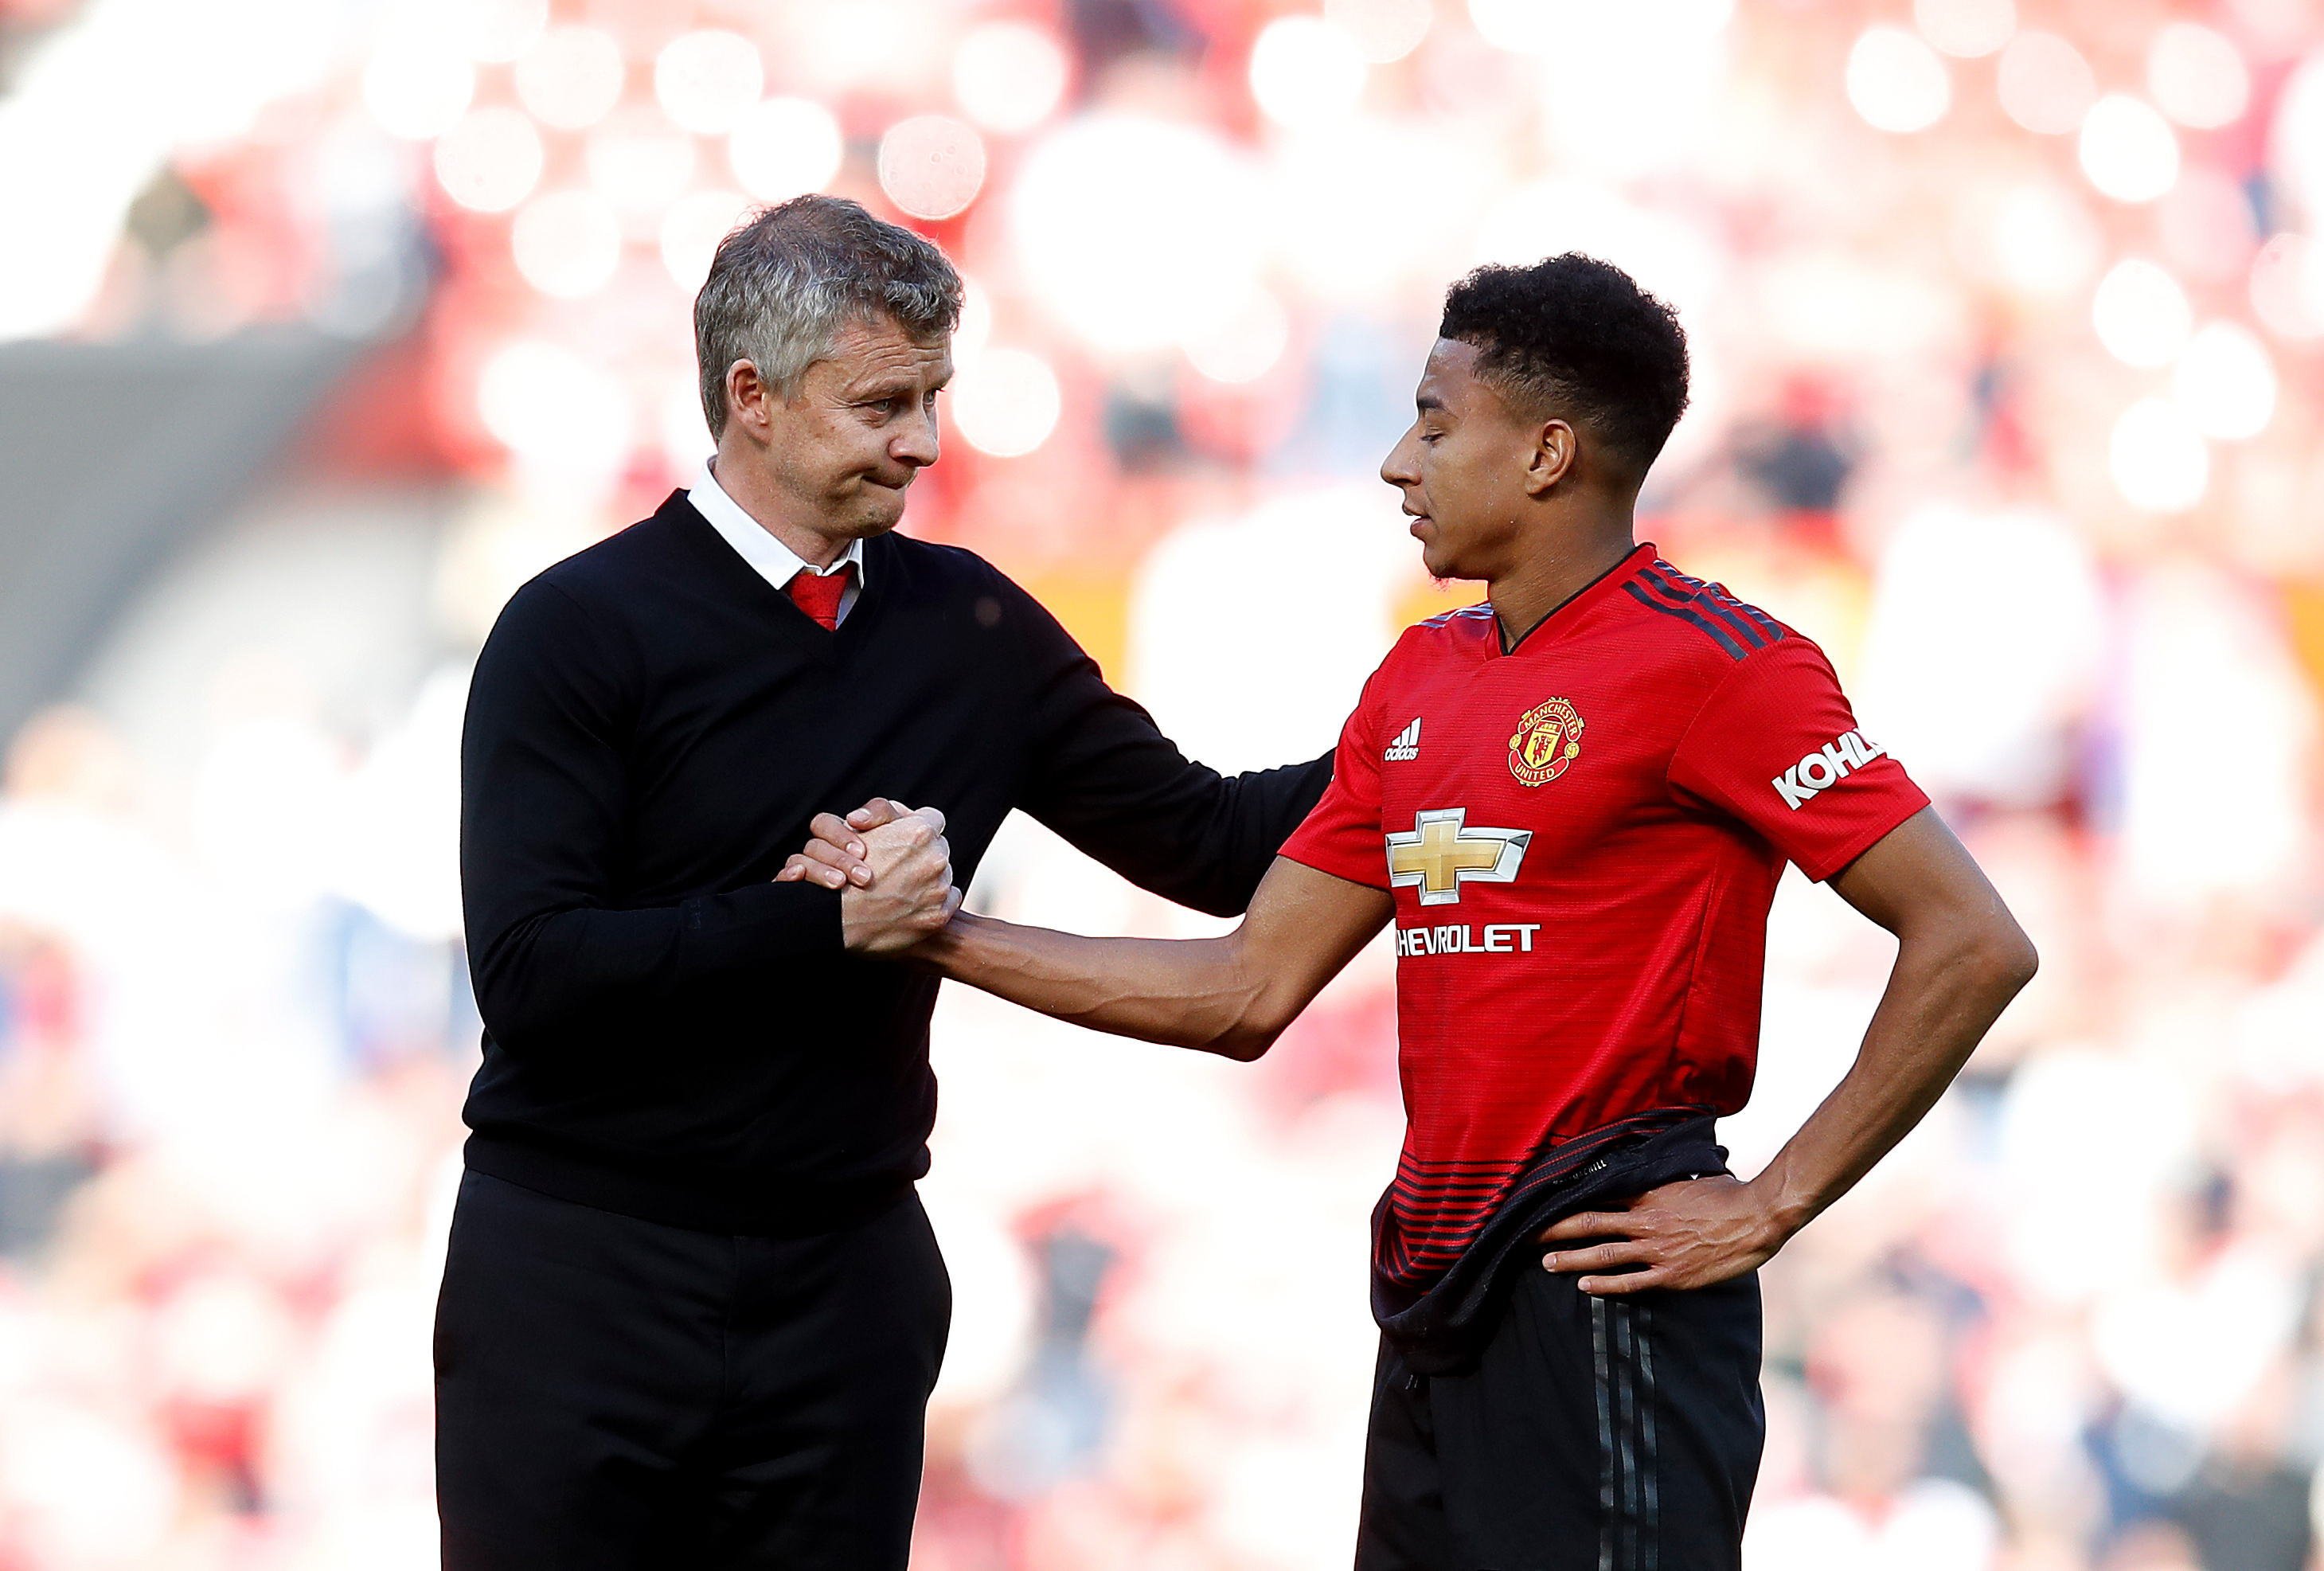 Ole Gunnar Solskjaer confirms Manchester United target has made transfer decision